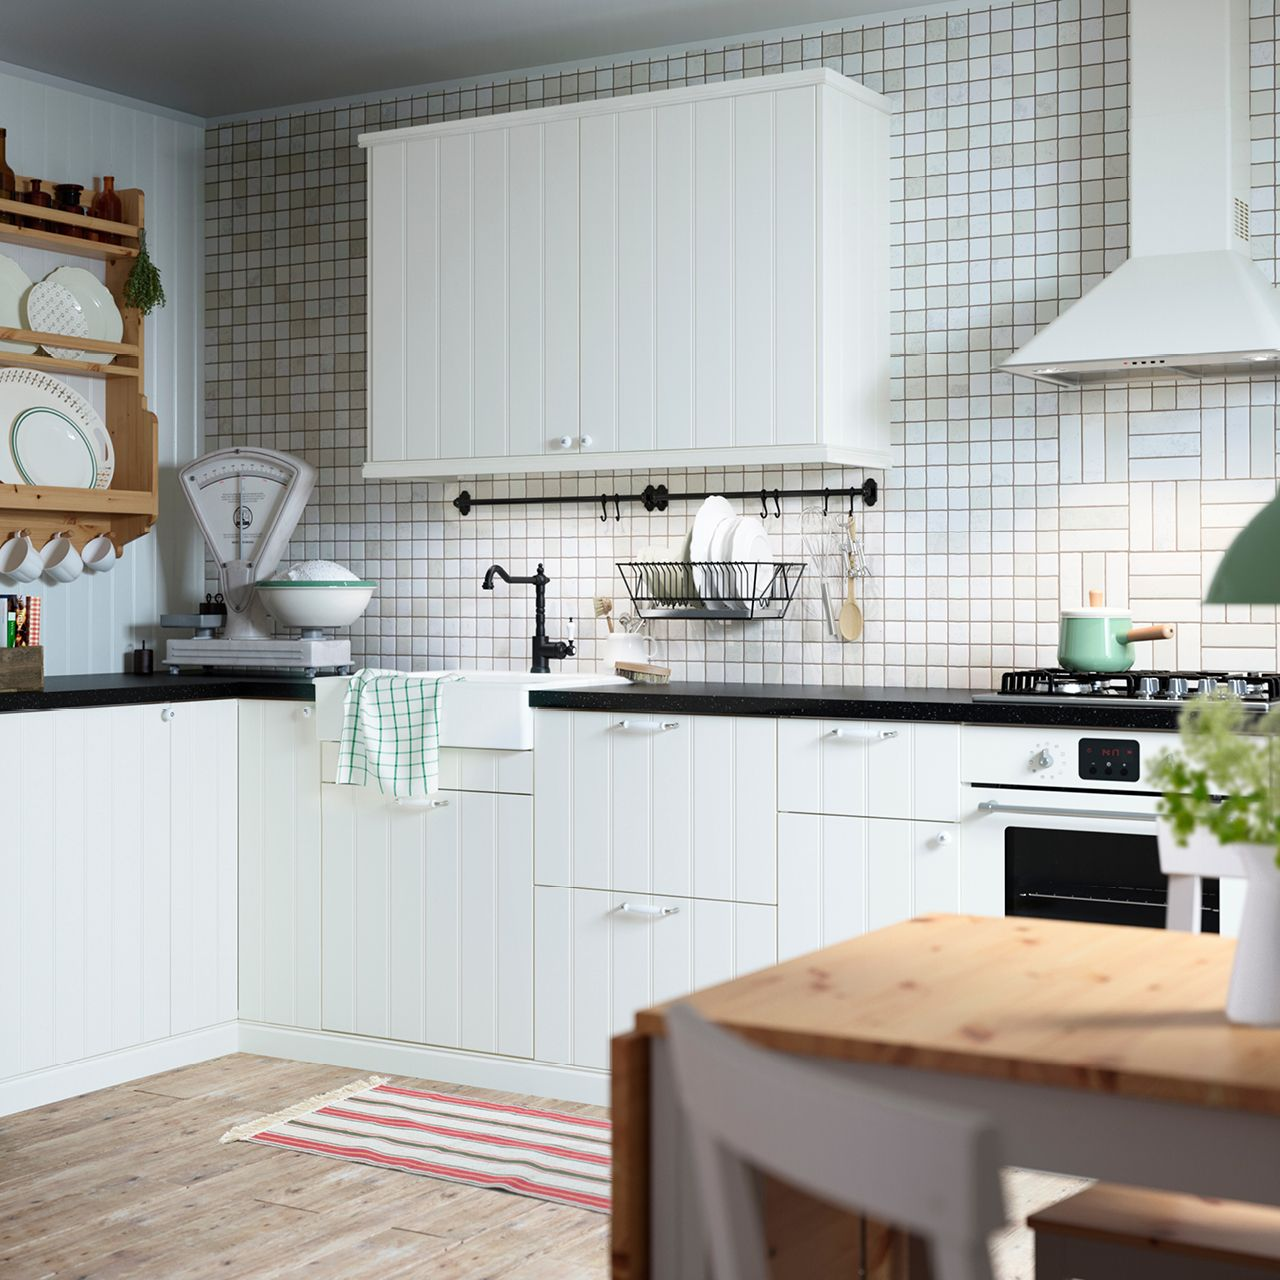 Ikea kitchens hittarp landhausstil kueche - The Perfect Space To Bake That Apple Pie Featured Products Hittarp Glittran